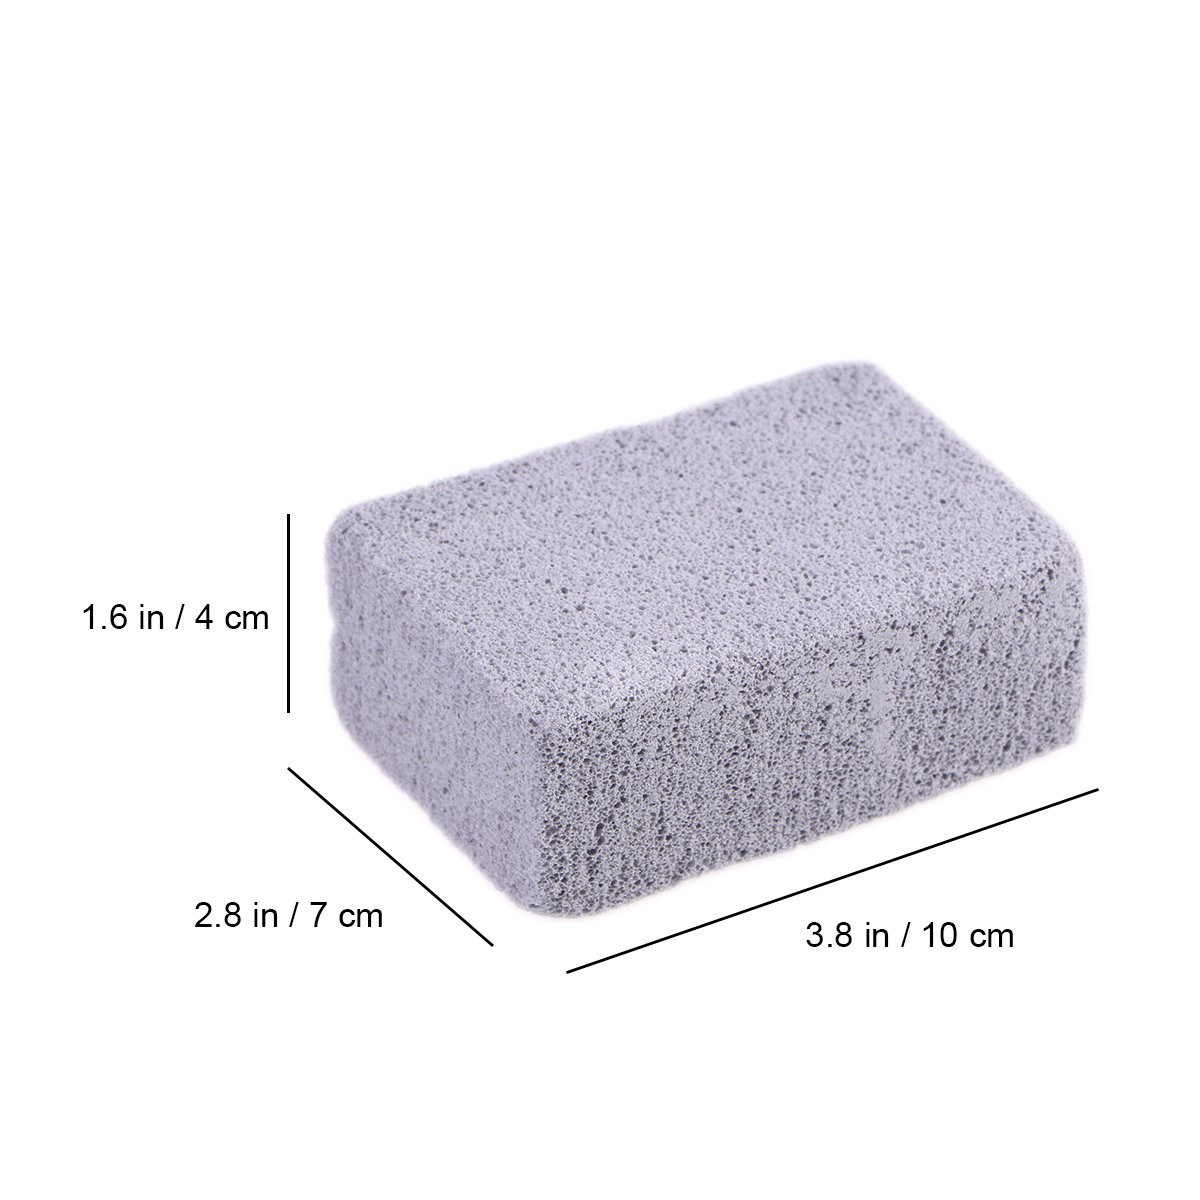 BESTOMZ Piedra Pómez Stone Care Scrubber Stone Grill Cleaning Block: Amazon.es: Hogar